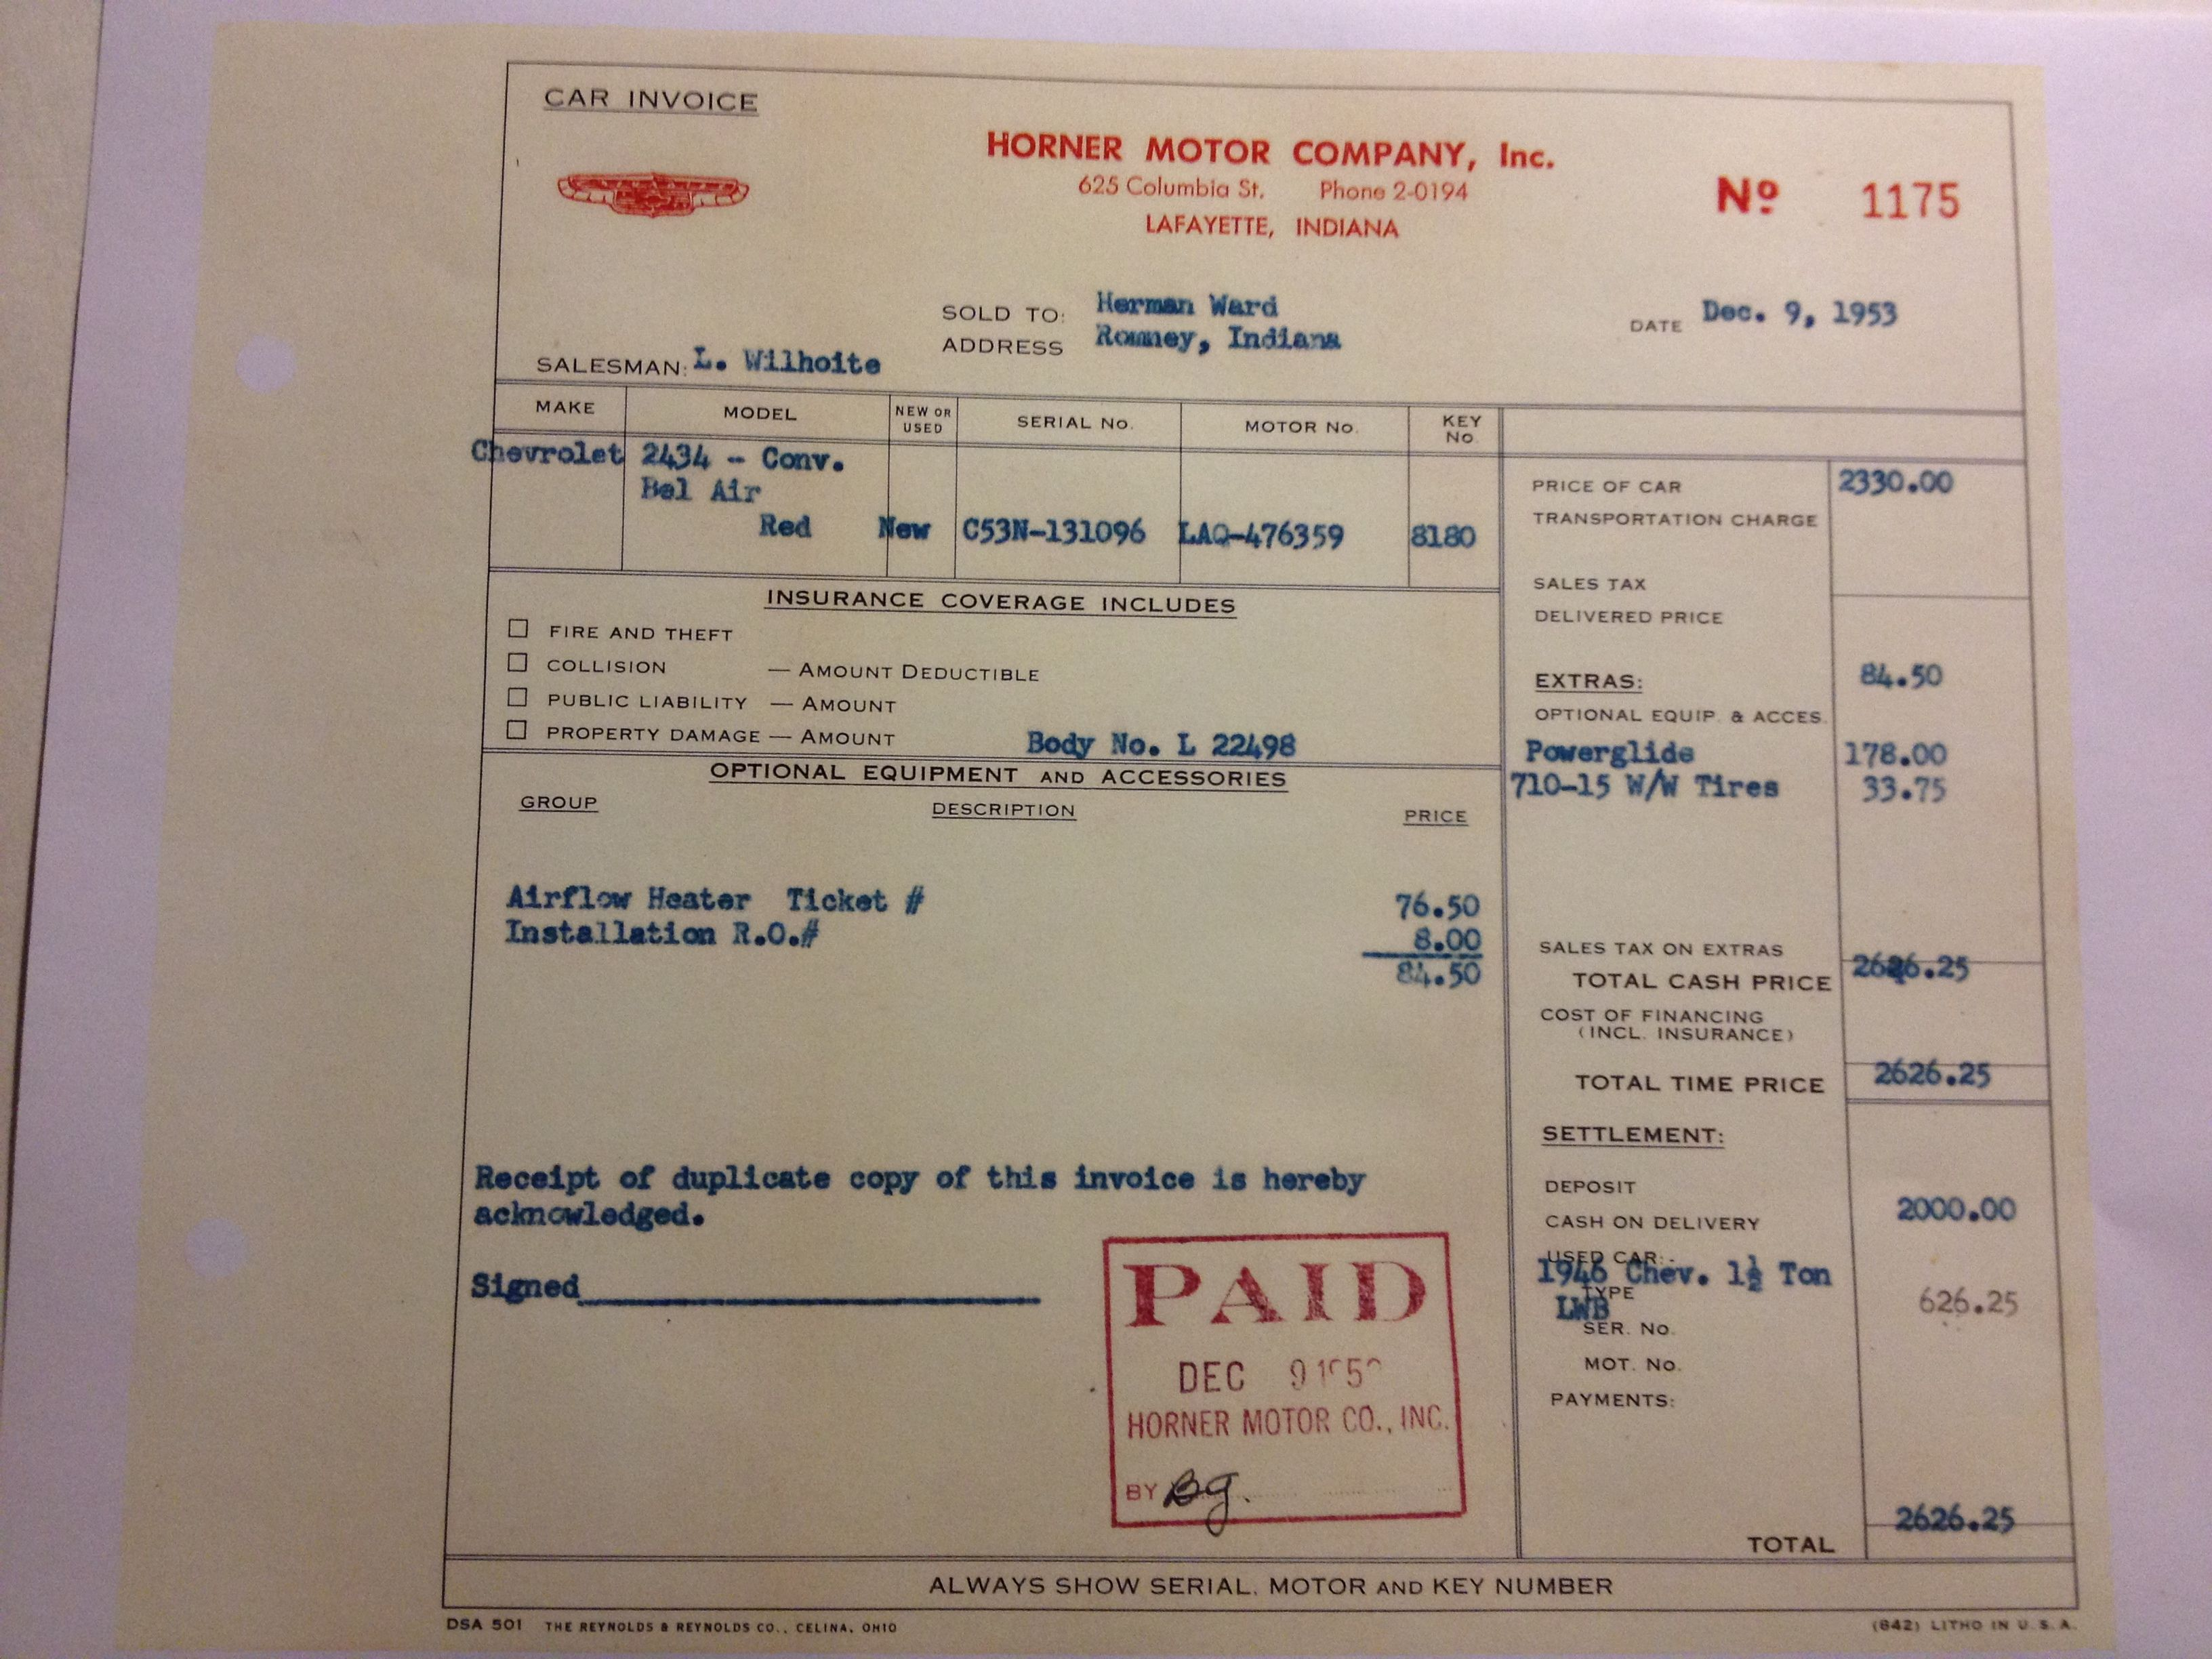 Invoice for my 1953 Chevy